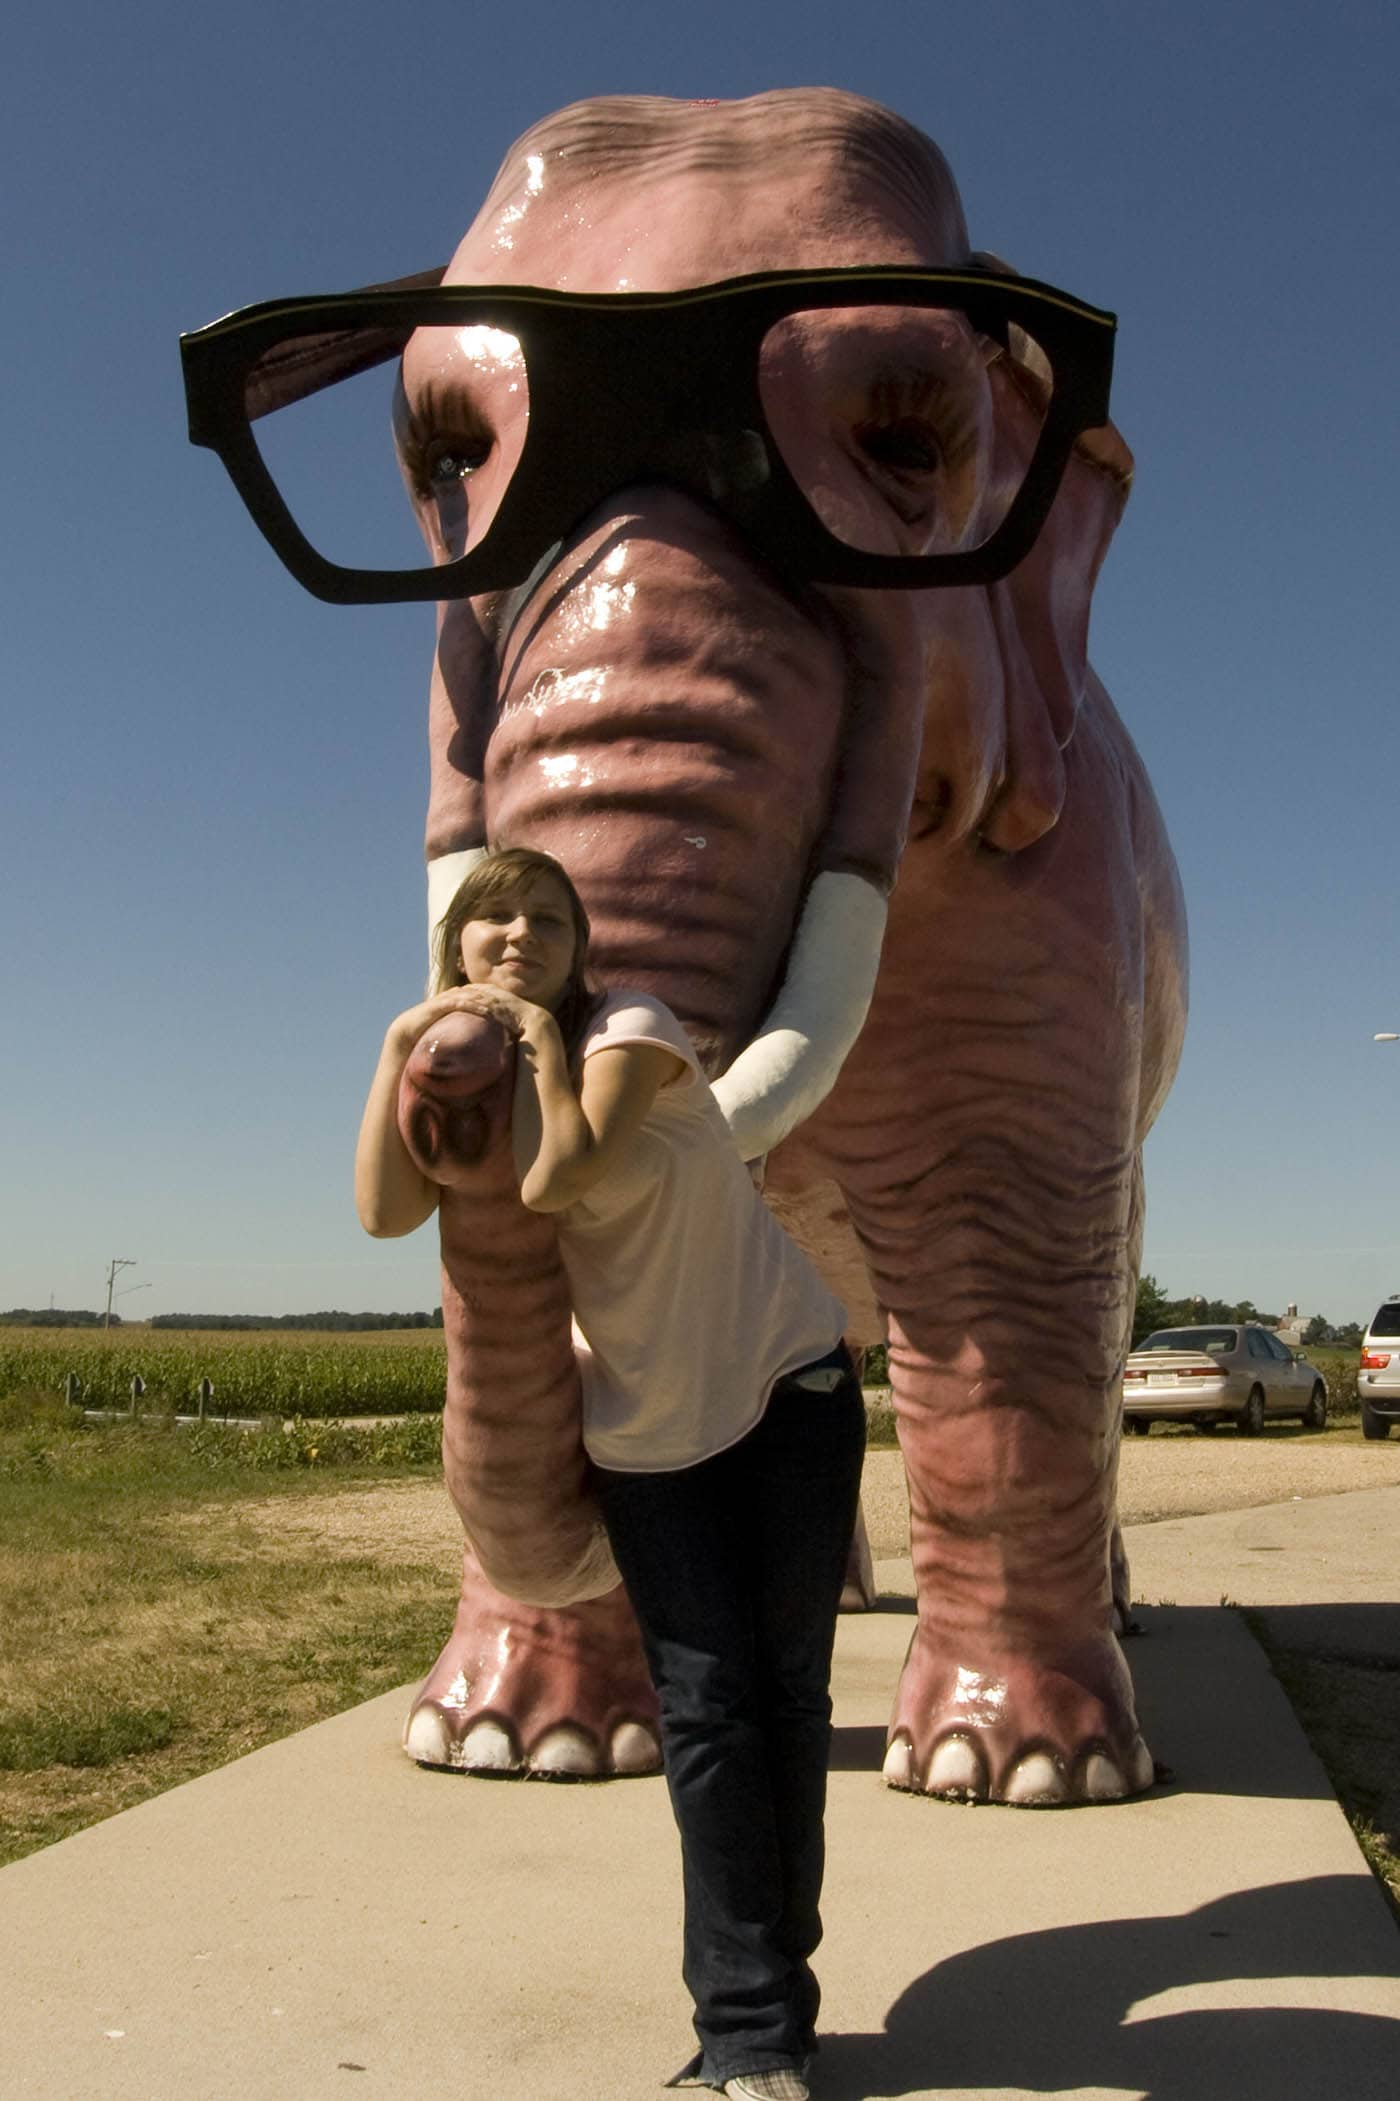 Pink Elephant roadside attraction in DeForest, Wisconsin. Labor Day Chicago to Mount Rushmore Road Trip.